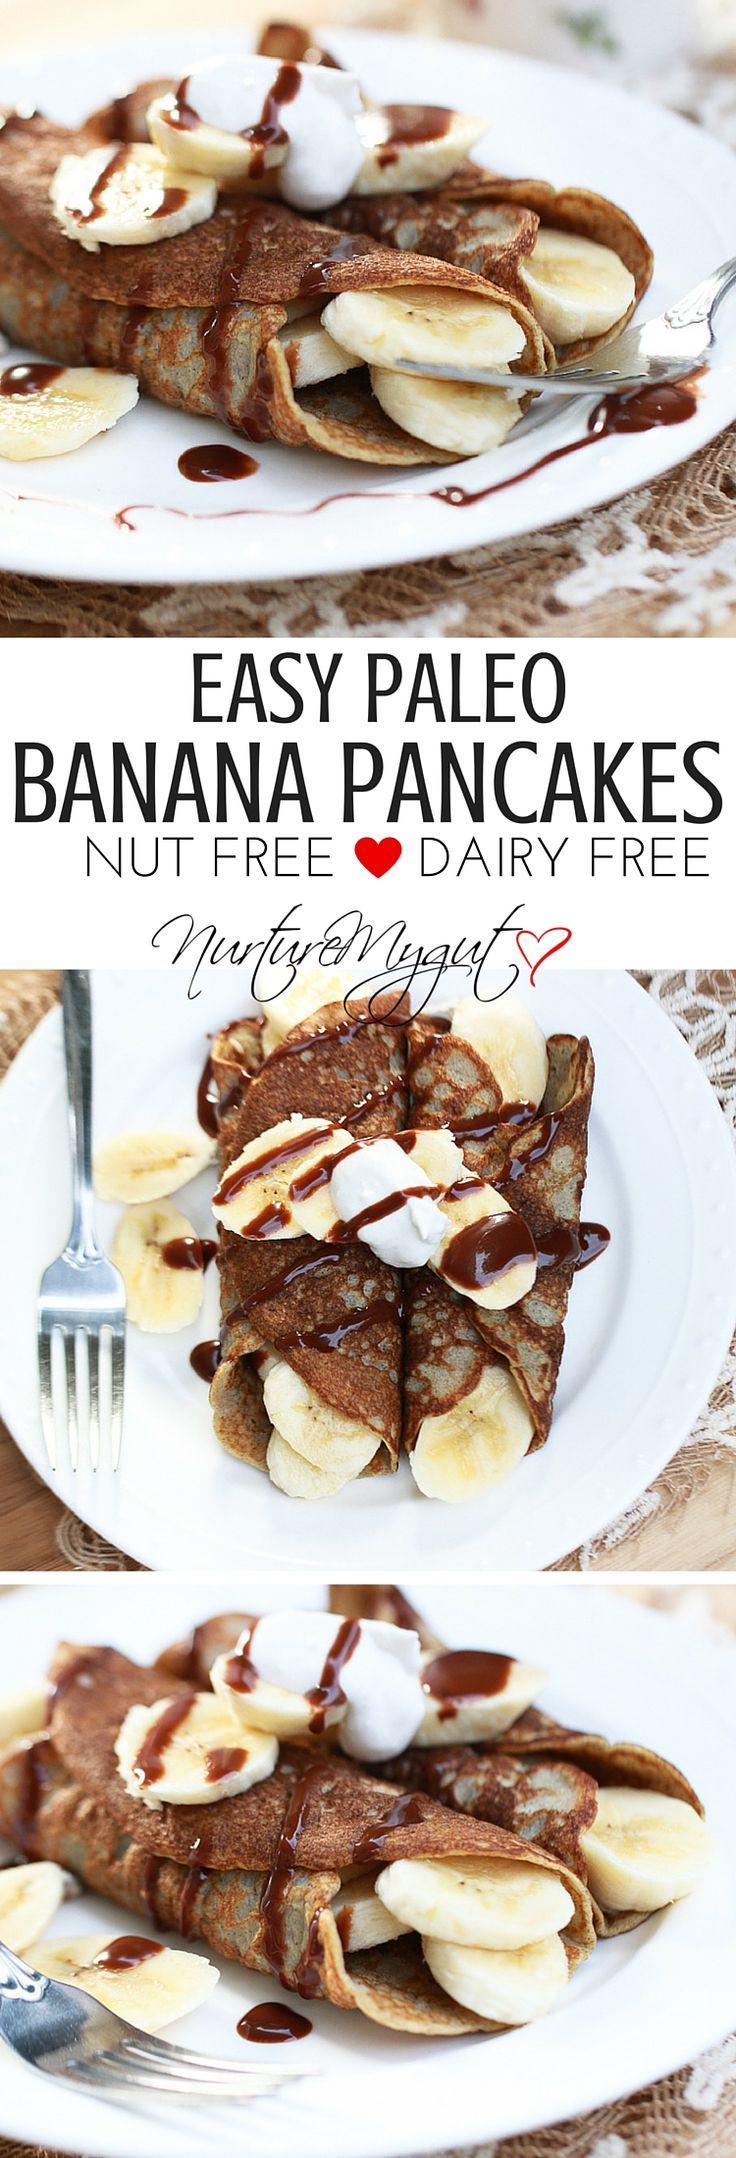 Heavenly banana pancakes which kick your Sunday breakfast up a notch!